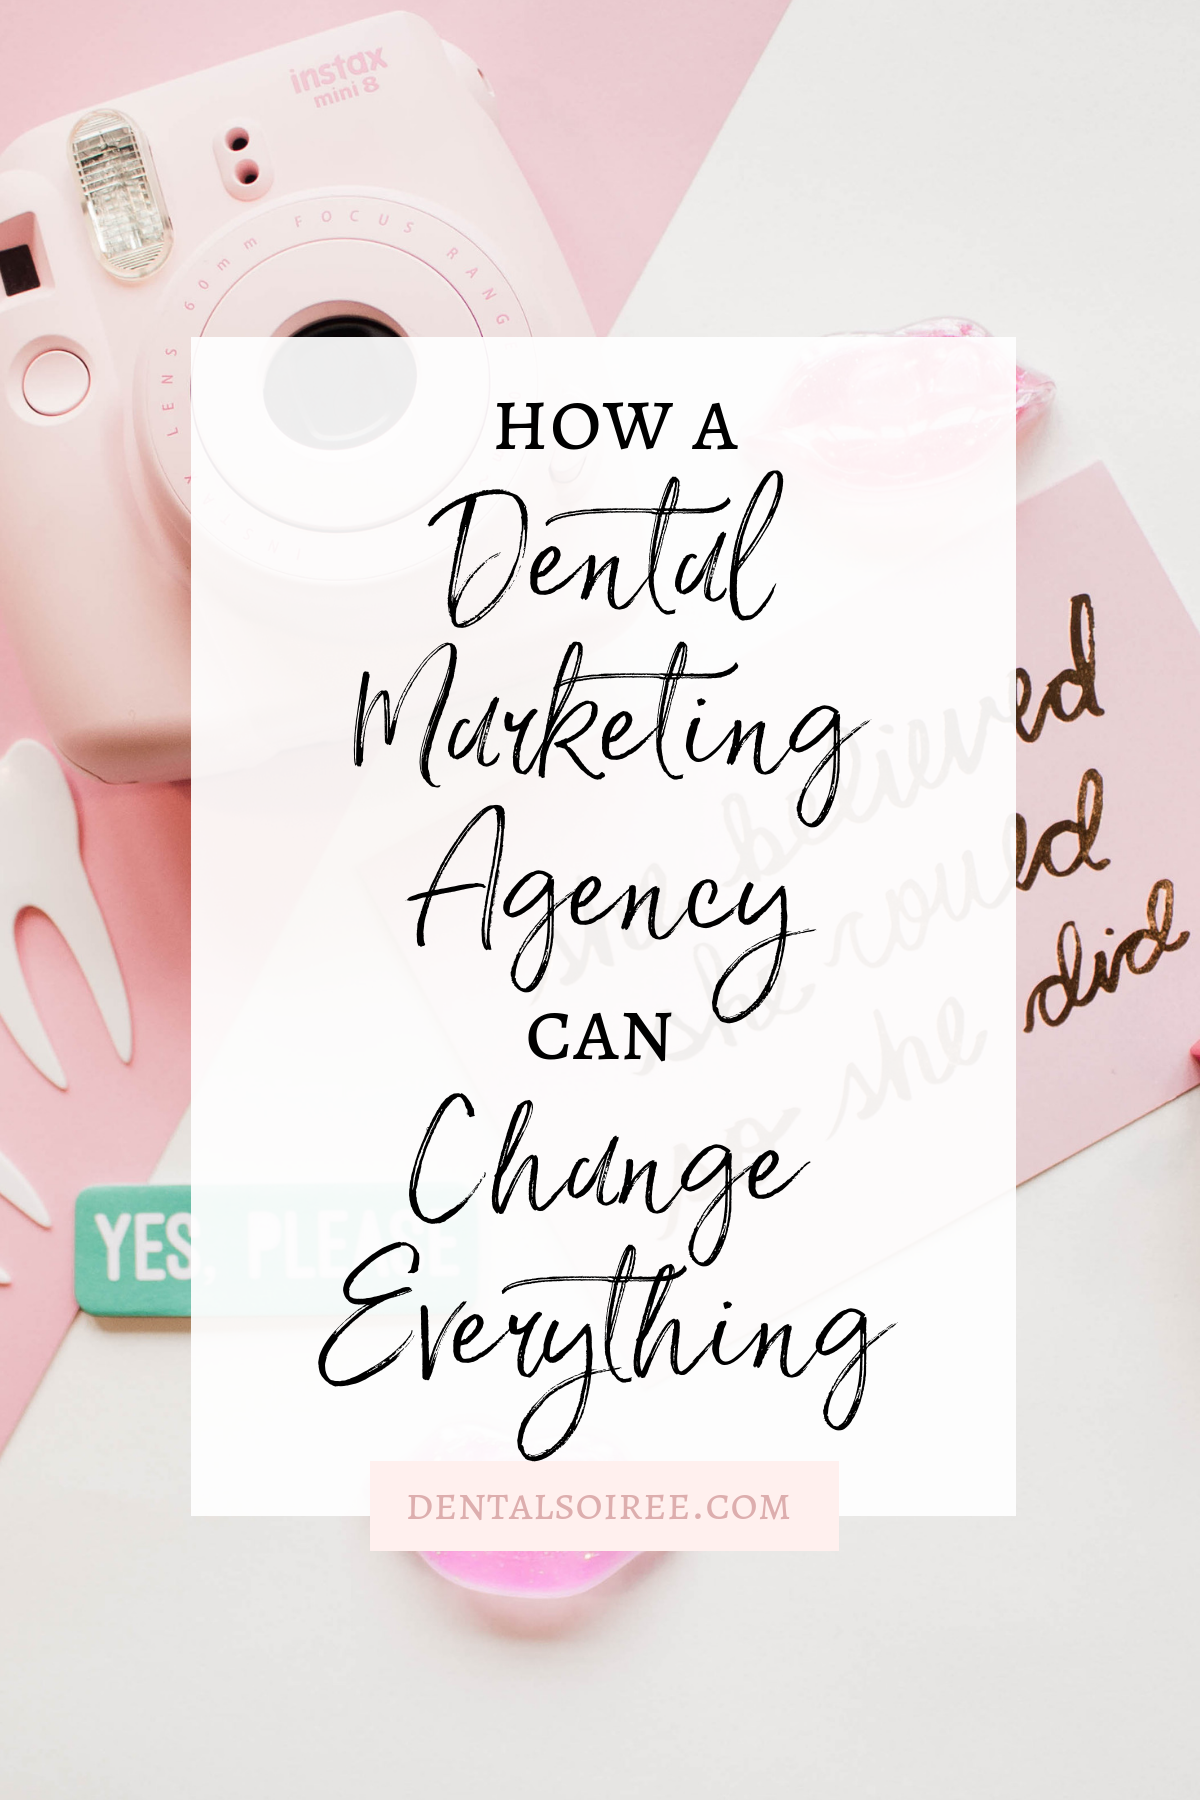 How a Dental Marketing Agency Can Change Everything